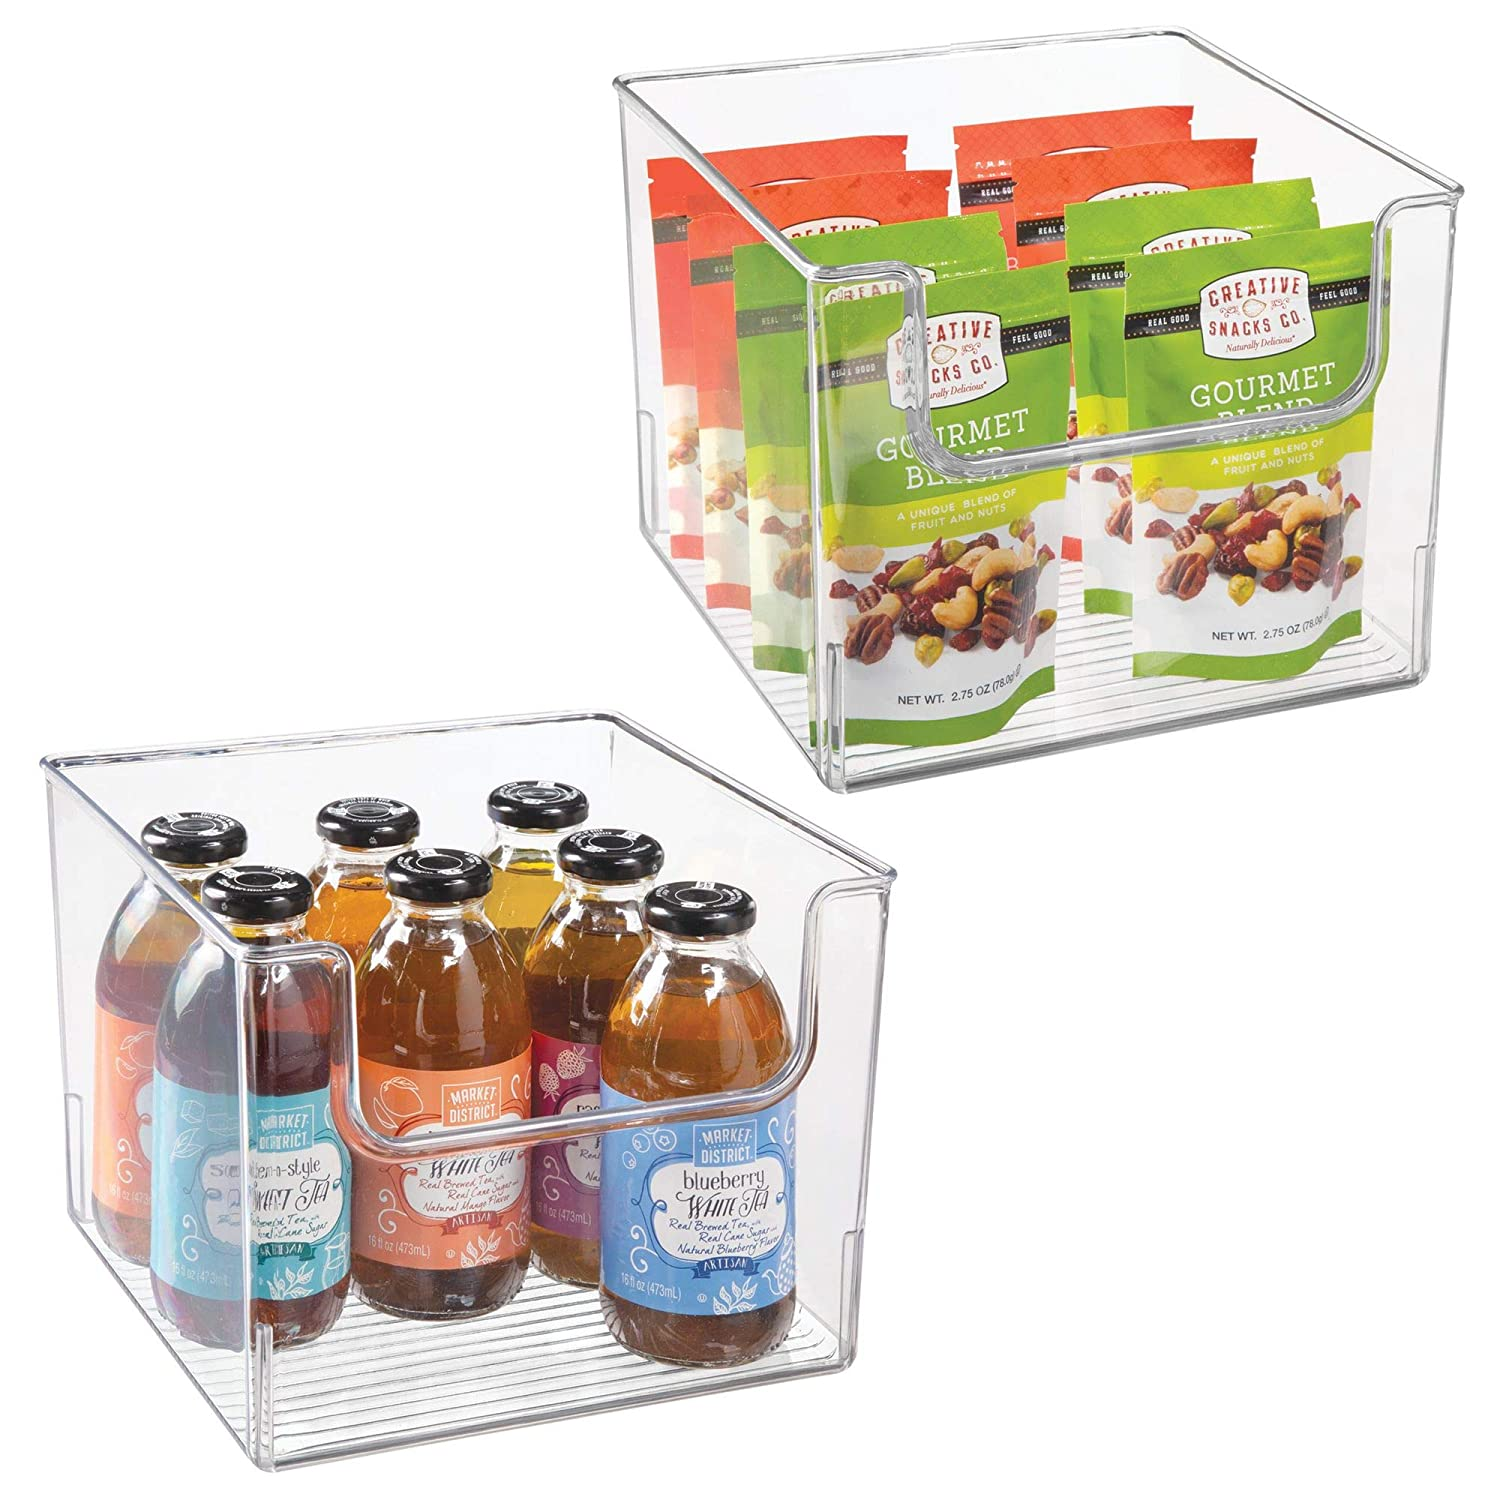 "mDesign Plastic Open Front Food Storage Bin for Kitchen Cabinet, Pantry, Shelf, Fridge/Freezer - Organizer for Fruit, Potatoes, Onions, Drinks, Snacks, Pasta - 10"" Wide, 2 Pack - Clear"